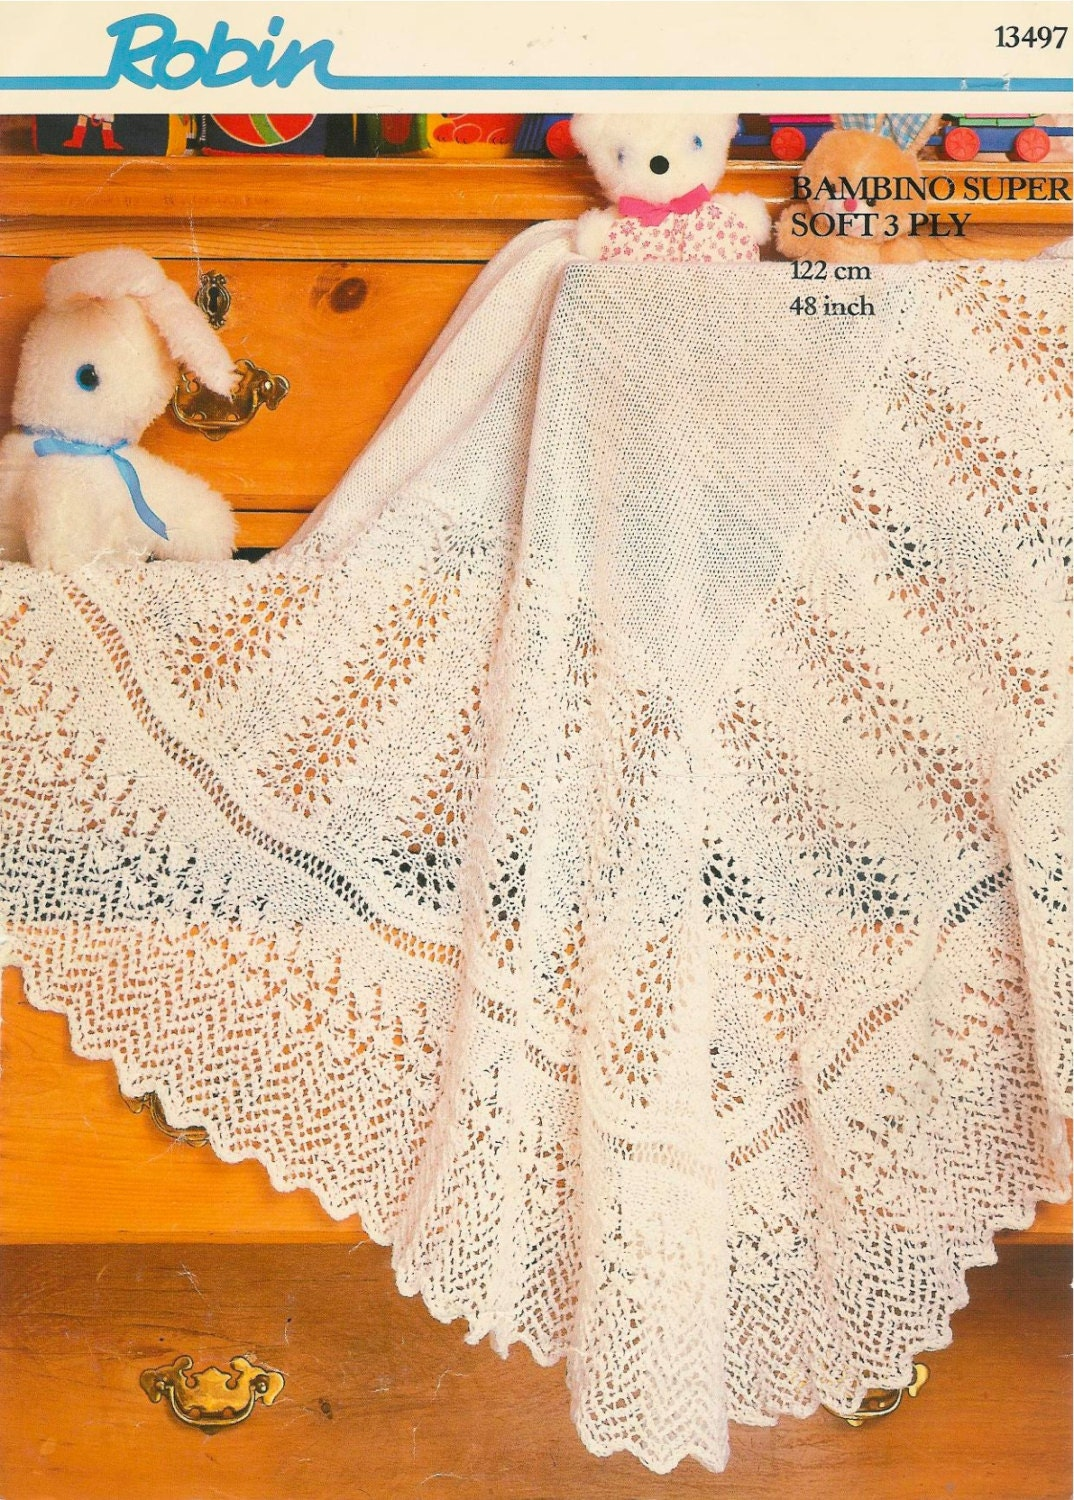 Vintage Knitting Pattern Baby Blanket : Vintage knitting pattern baby blanket afghan pram cover throw